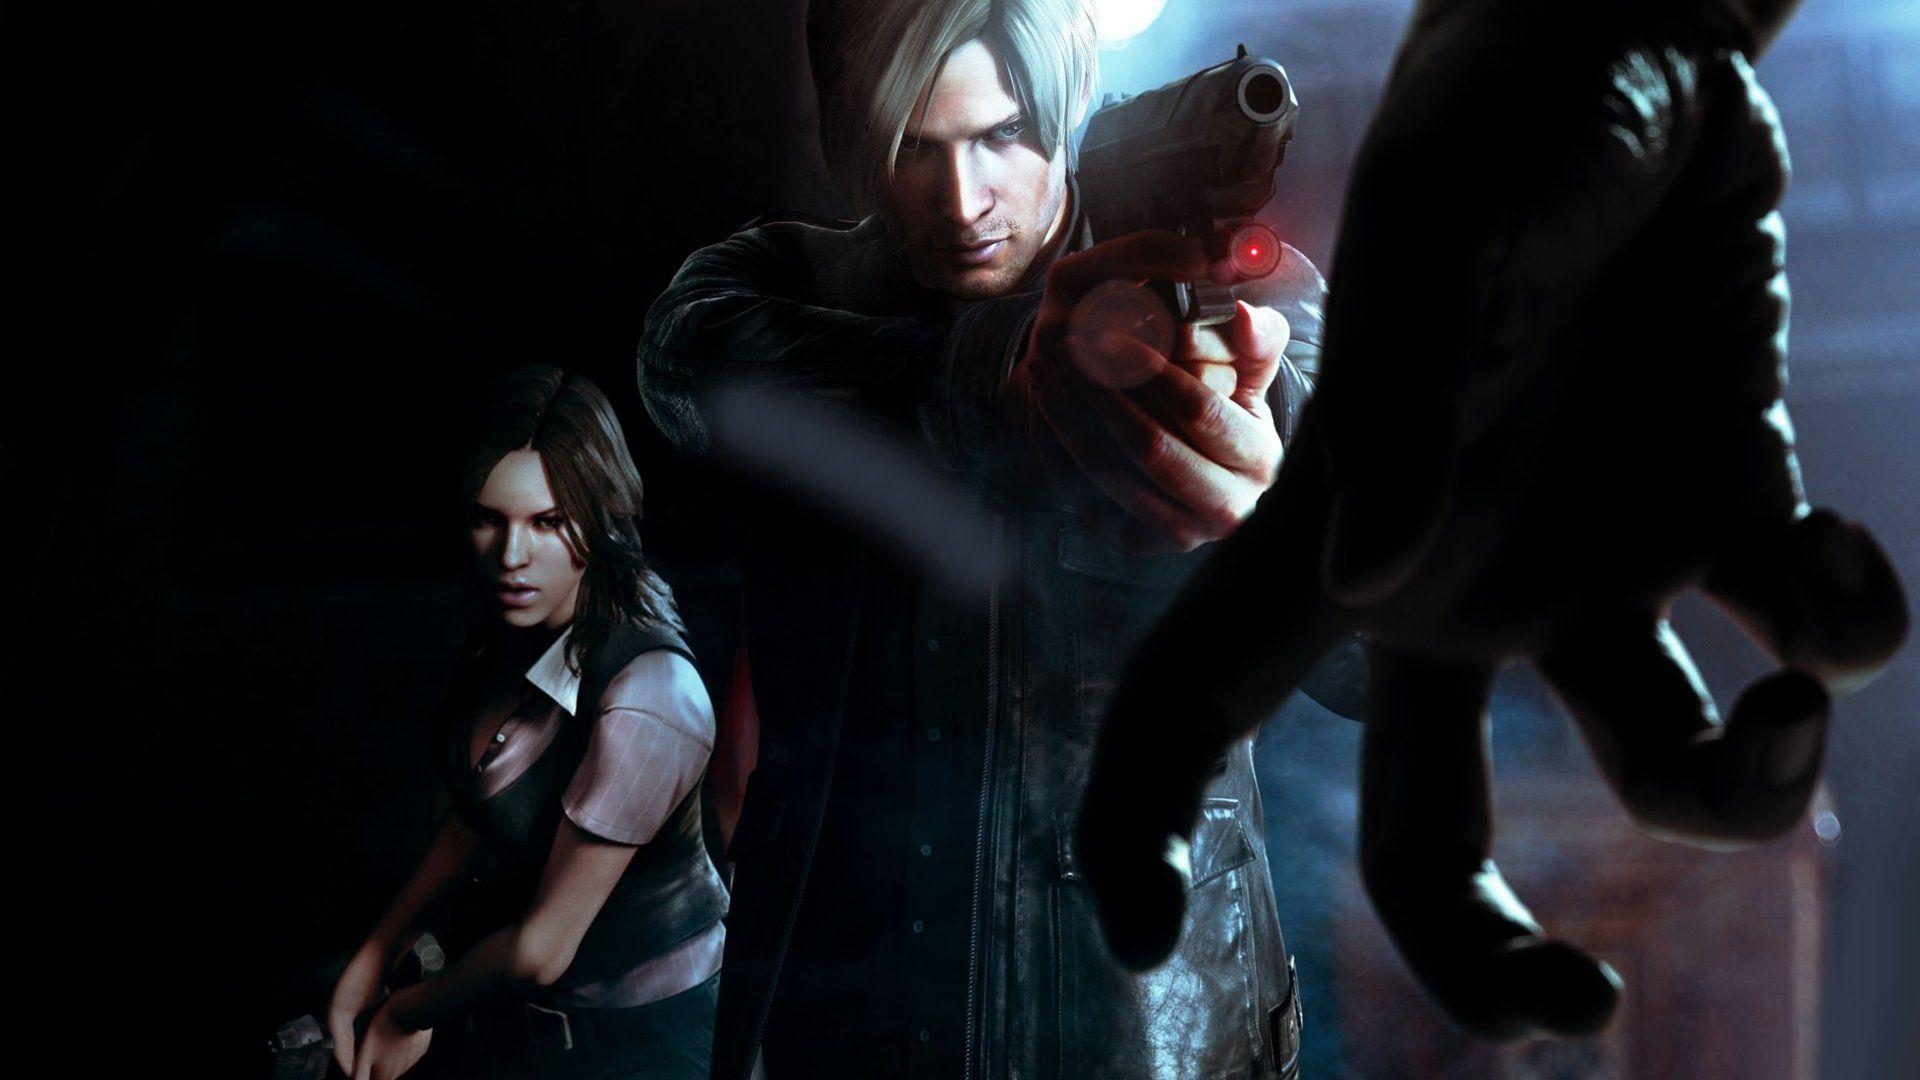 Resident Evil 6 Wallpapers Hd 1920x1080 Wallpaper Cave